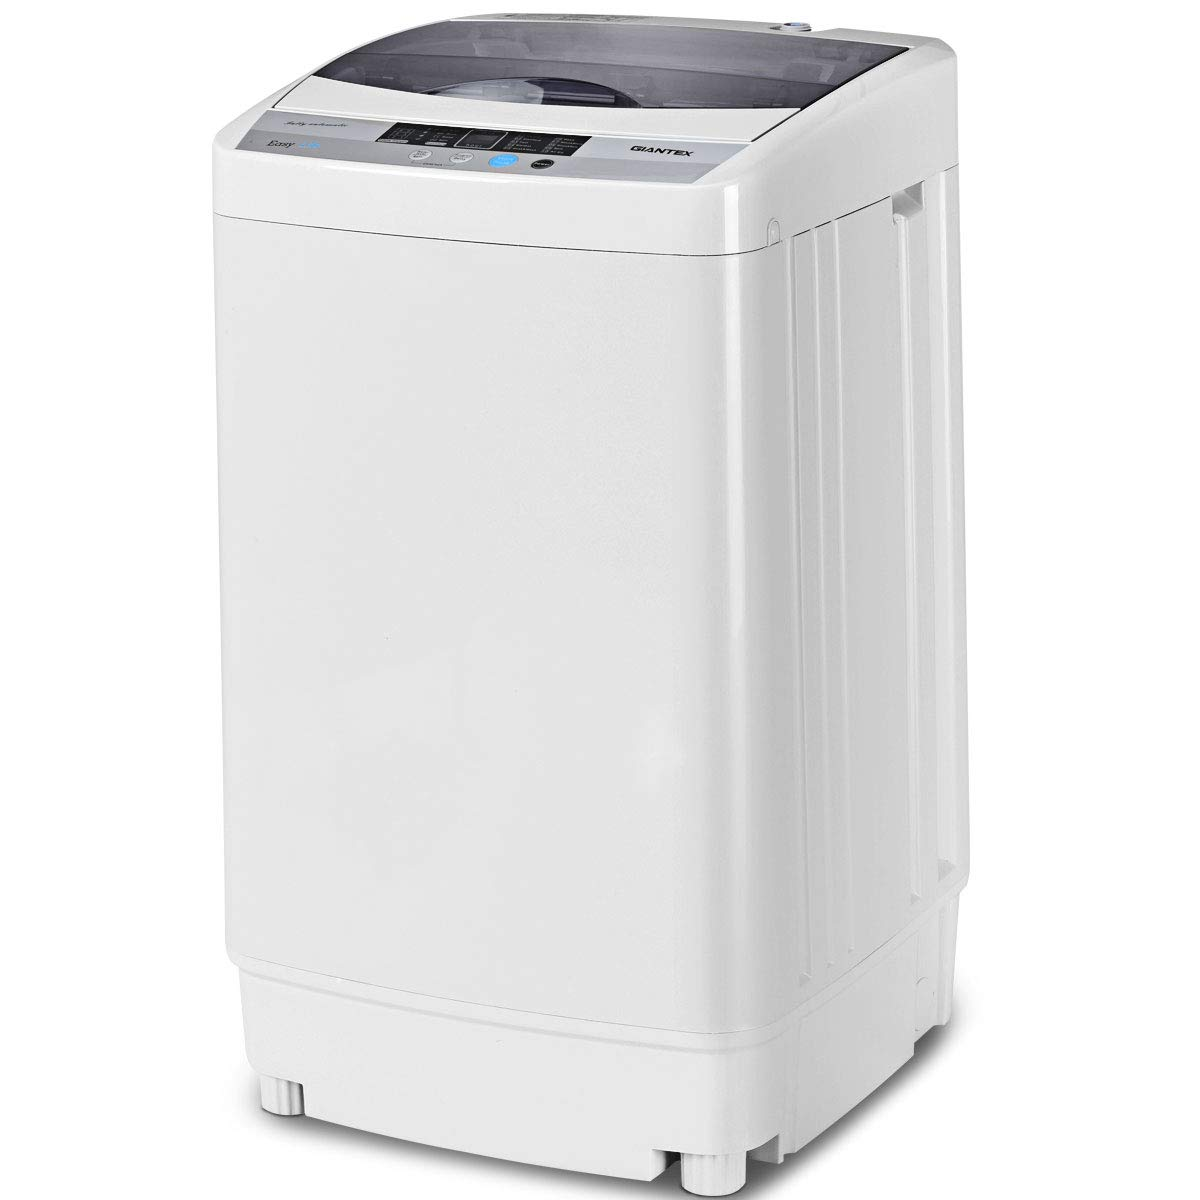 Giantex Full-Automatic Washing Machine Portable Compact 1.6 Cu.ft Laundry Washer Spin with Drain Pump, 10 programs 8 Water Level Selections with LED Display 10 Lbs Capacity